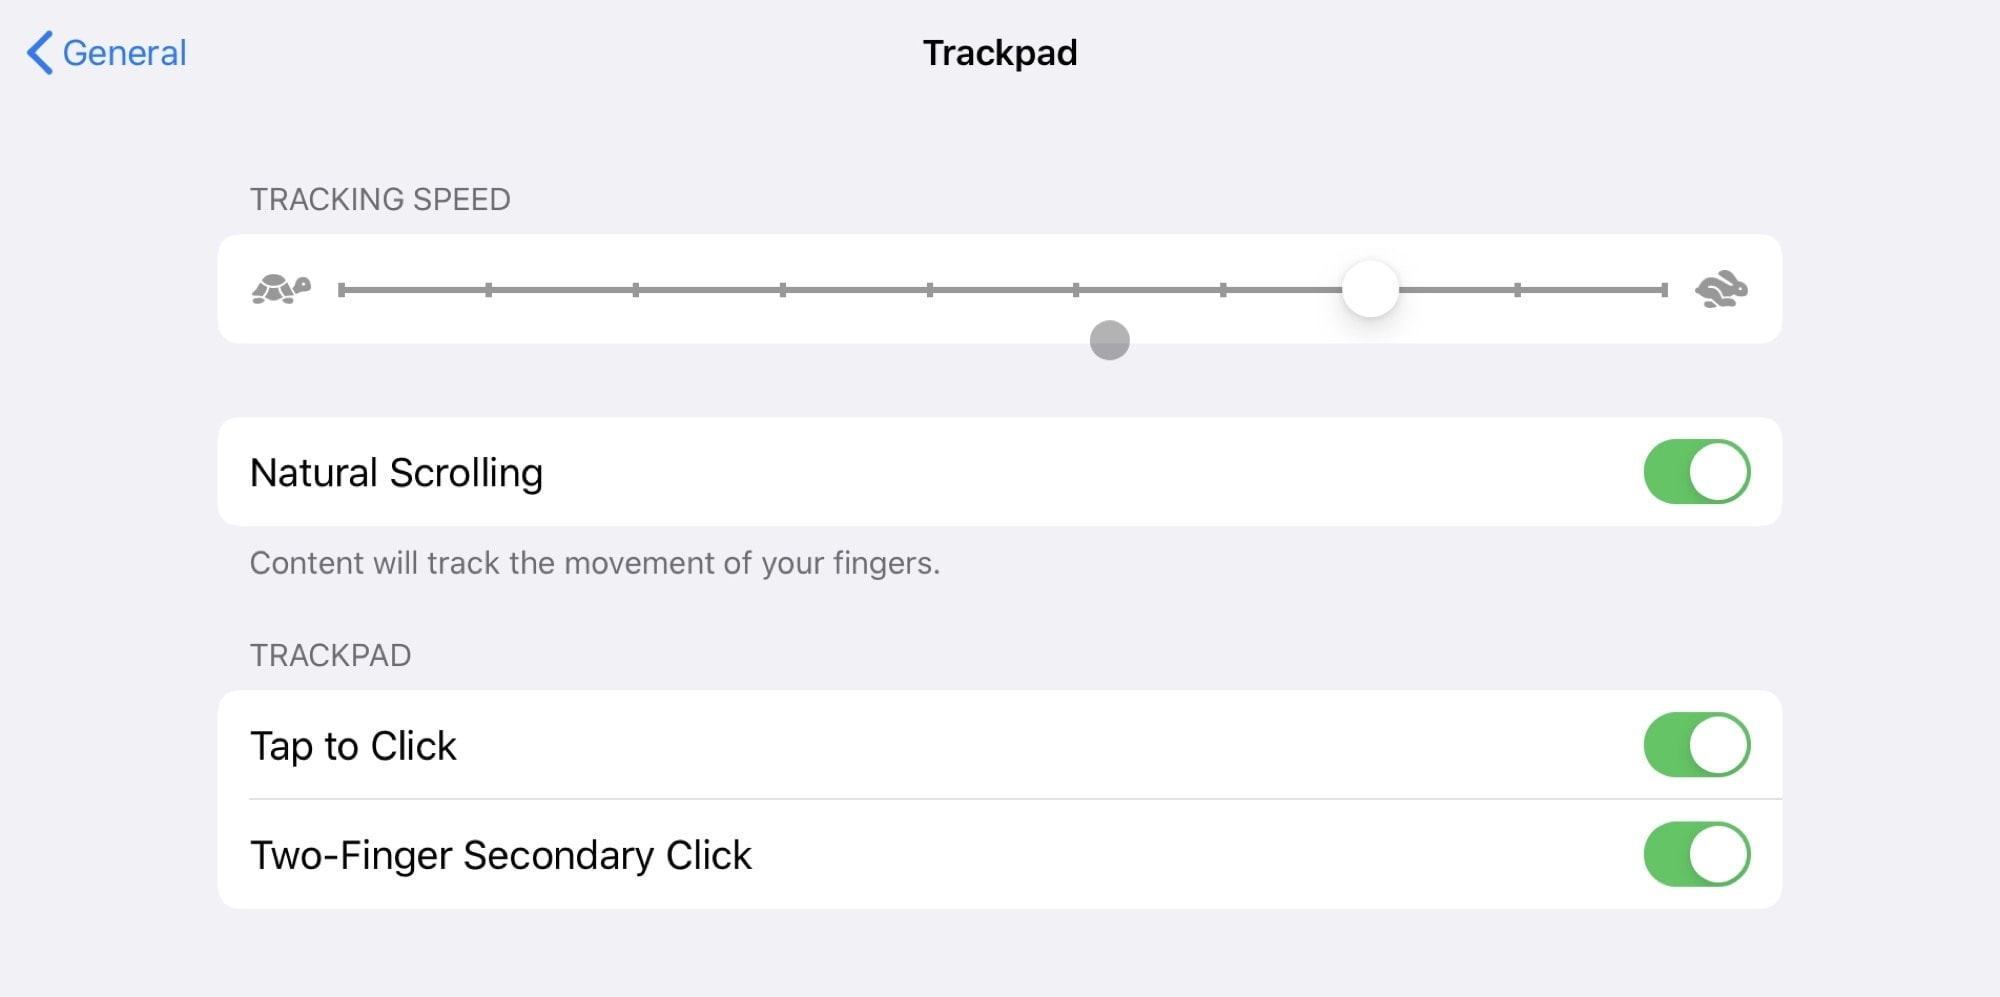 The regular trackpad settings offer several ways to customize iPad trackpad options.